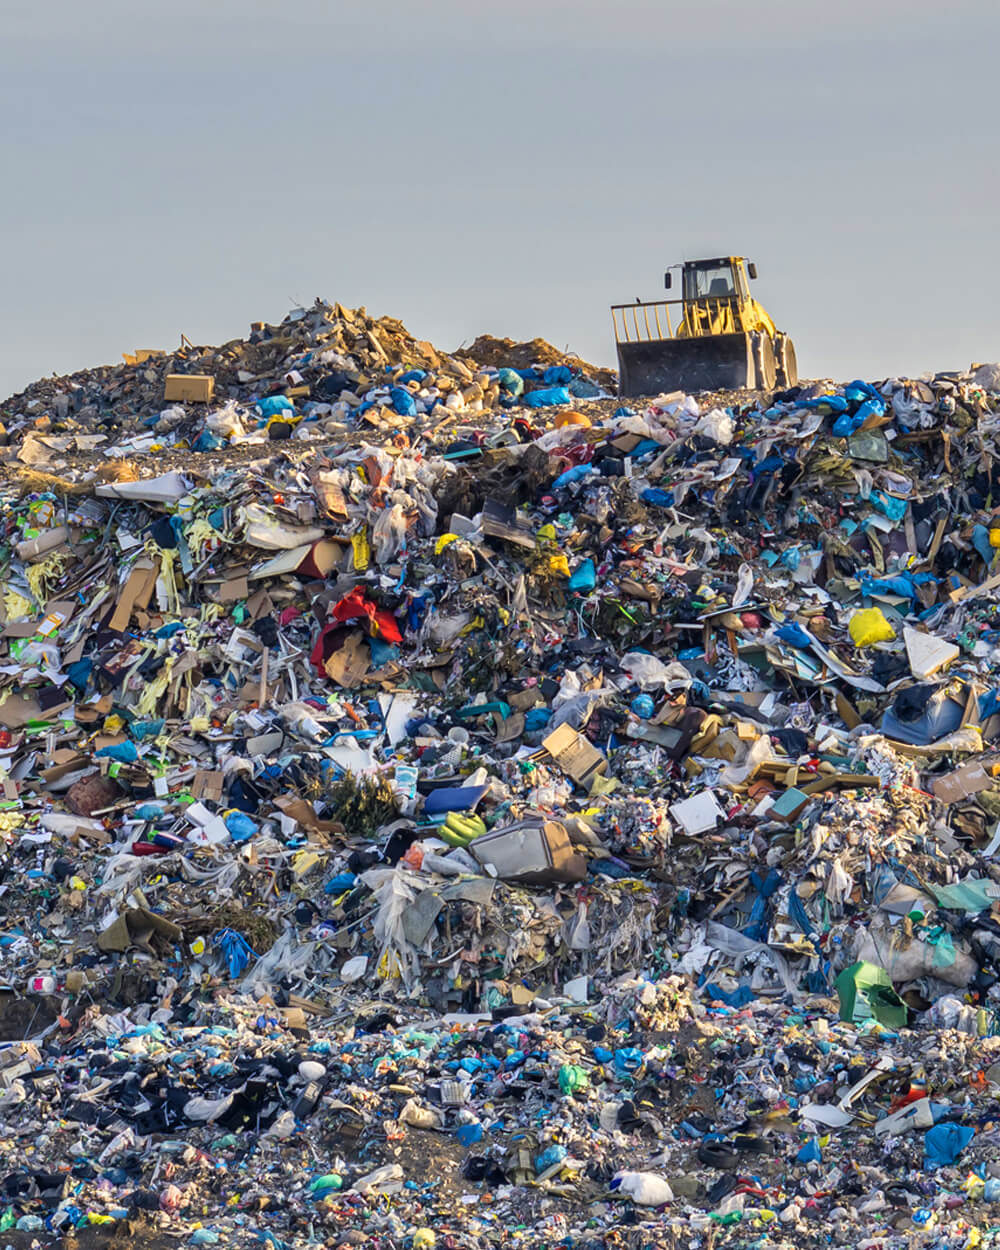 fast fashion textile waste in landfill